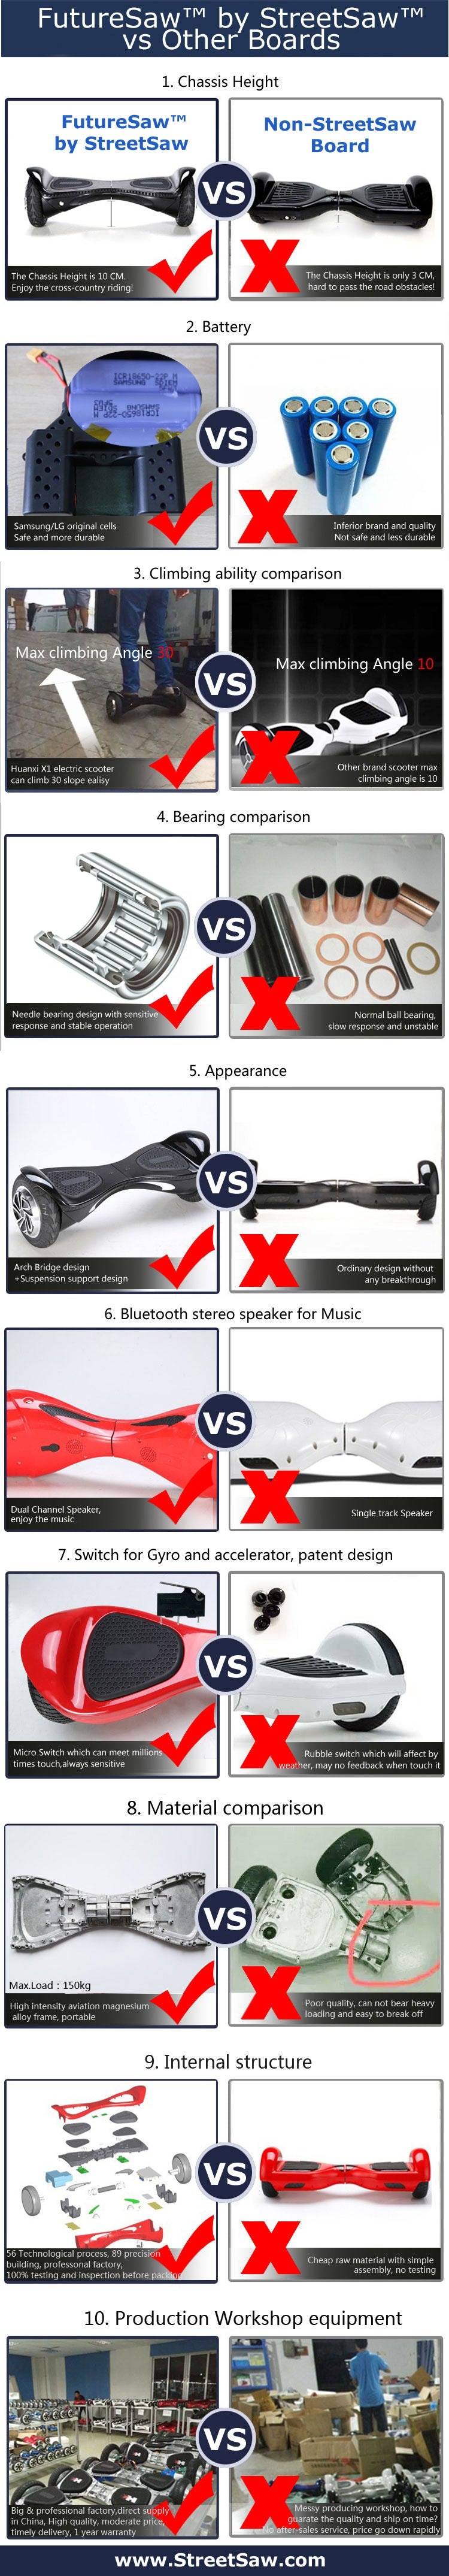 FutureSaw Hoverboard Comparison